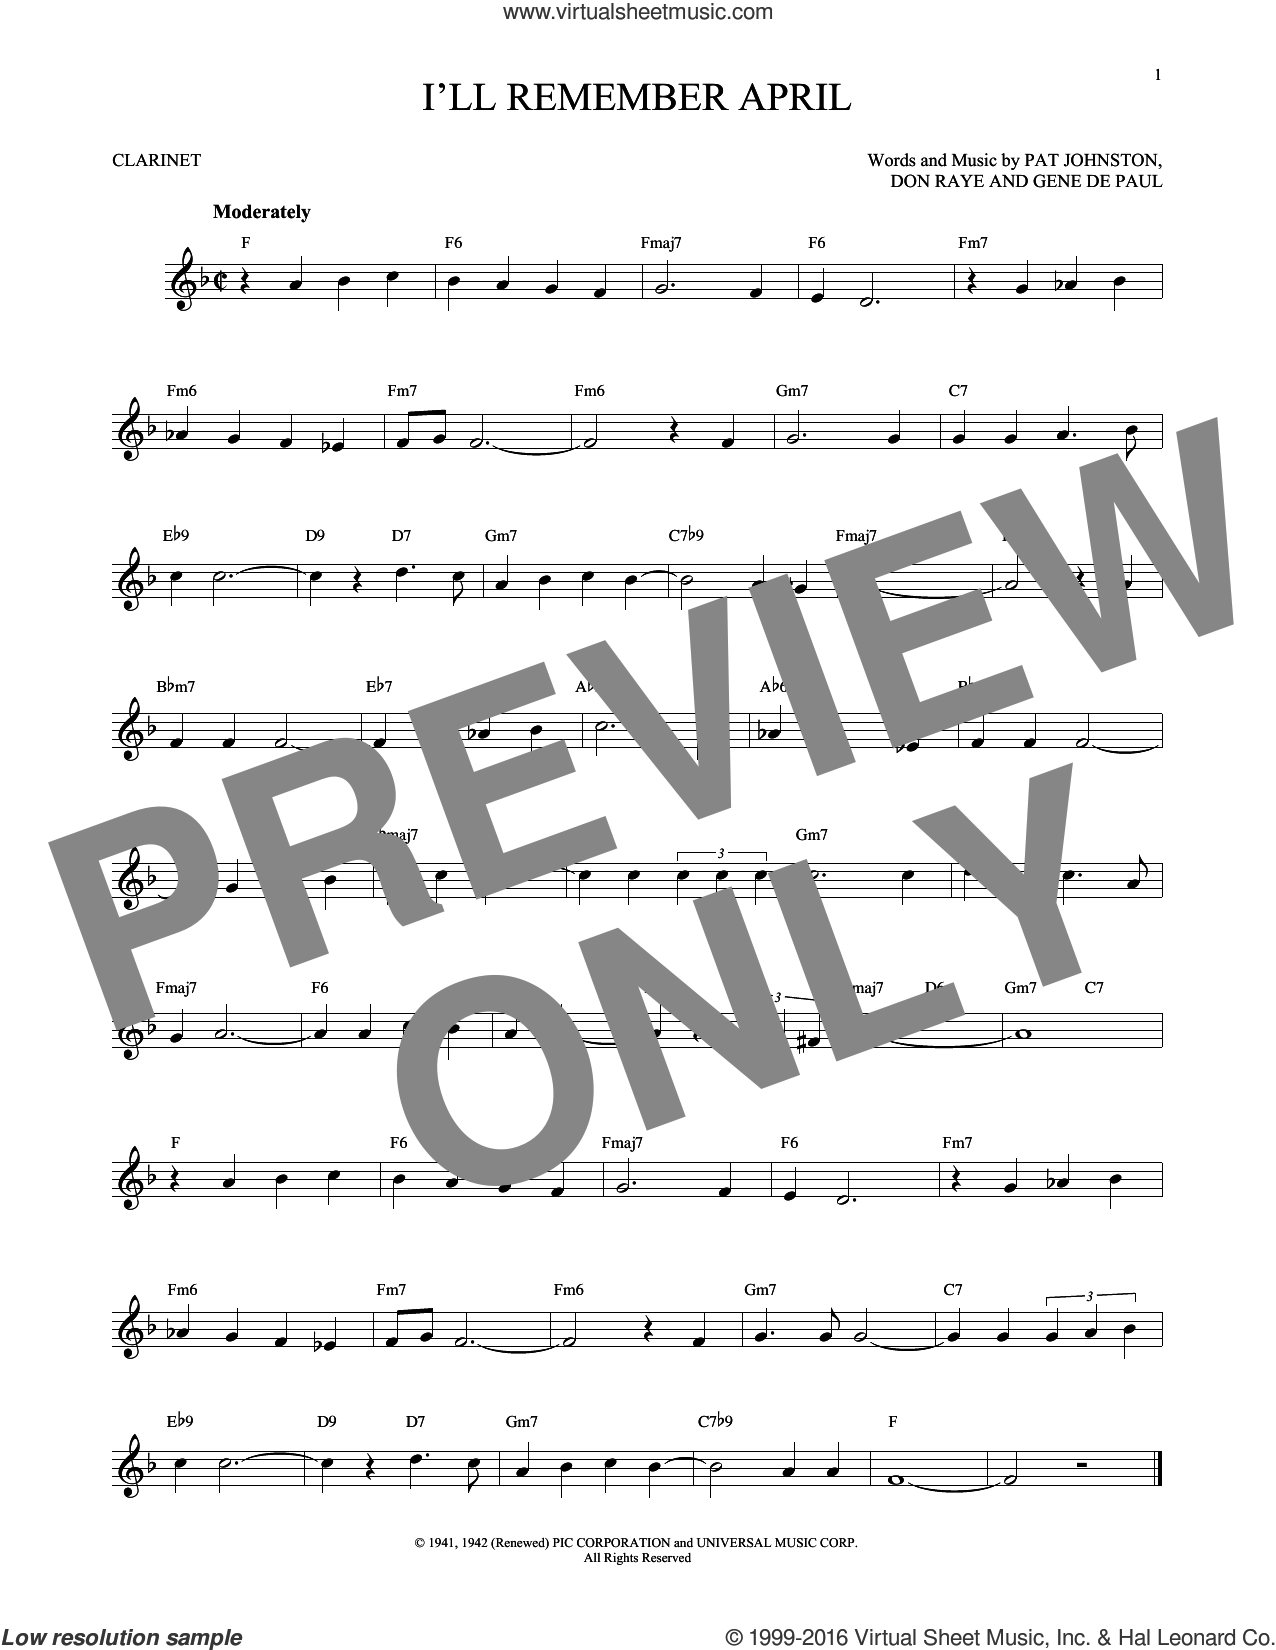 I'll Remember April sheet music for clarinet solo by Woody Herman & His Orchestra, Don Raye, Gene DePaul and Pat Johnston, intermediate